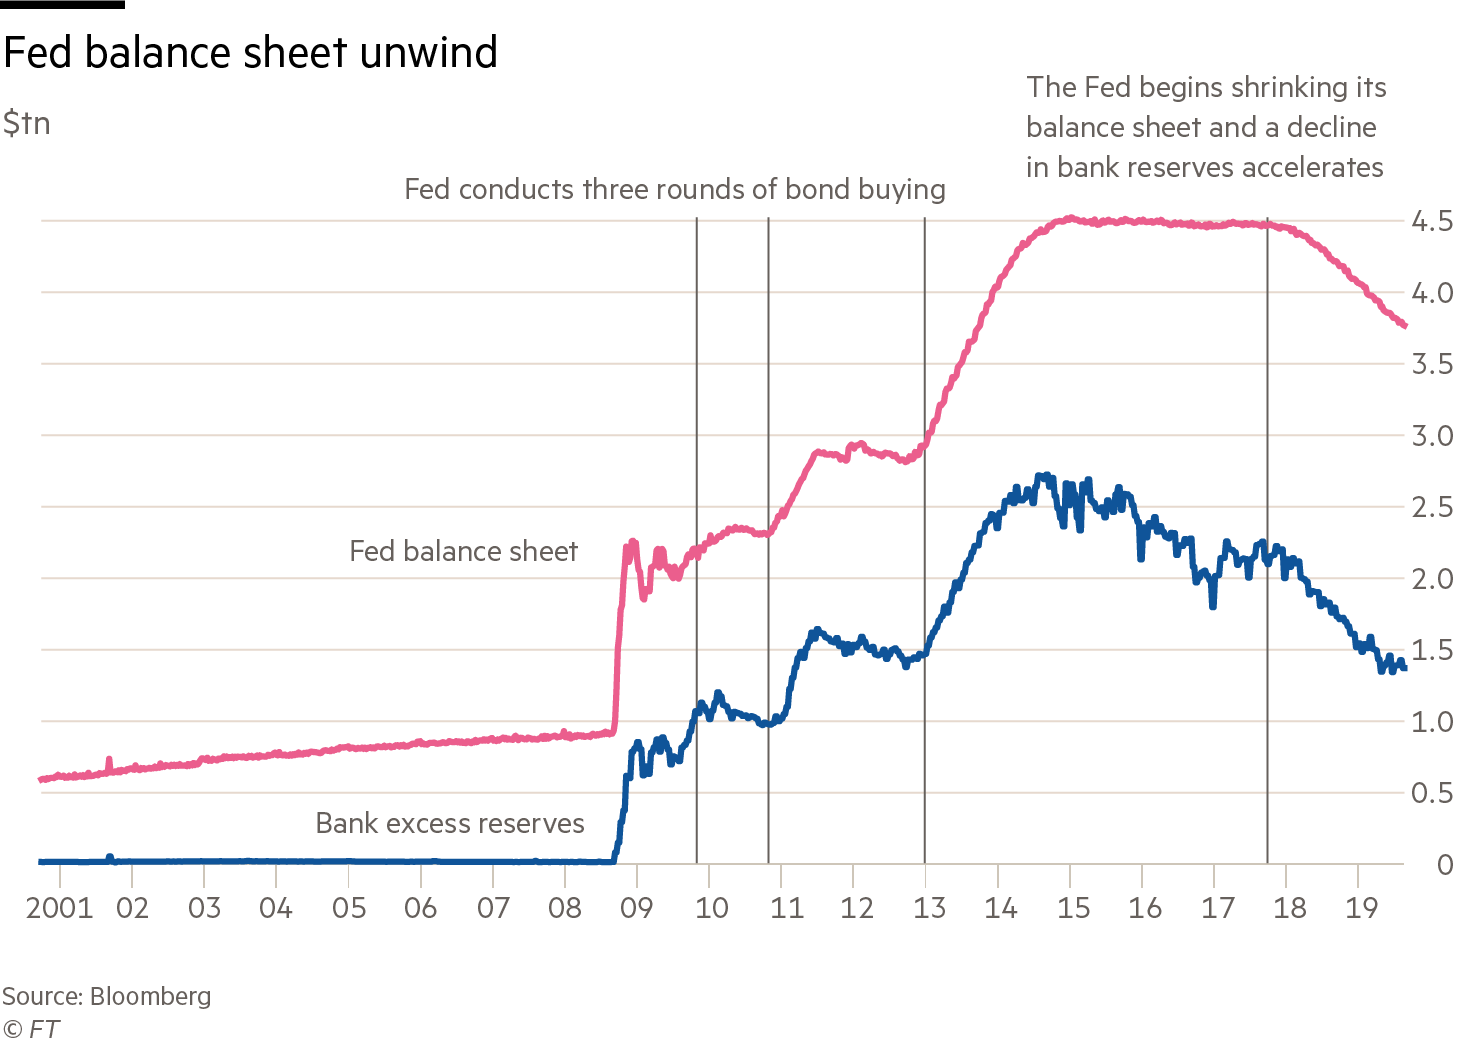 Line chart showing the Fed balance sheet and bank excess reserves between 2001 and 2019